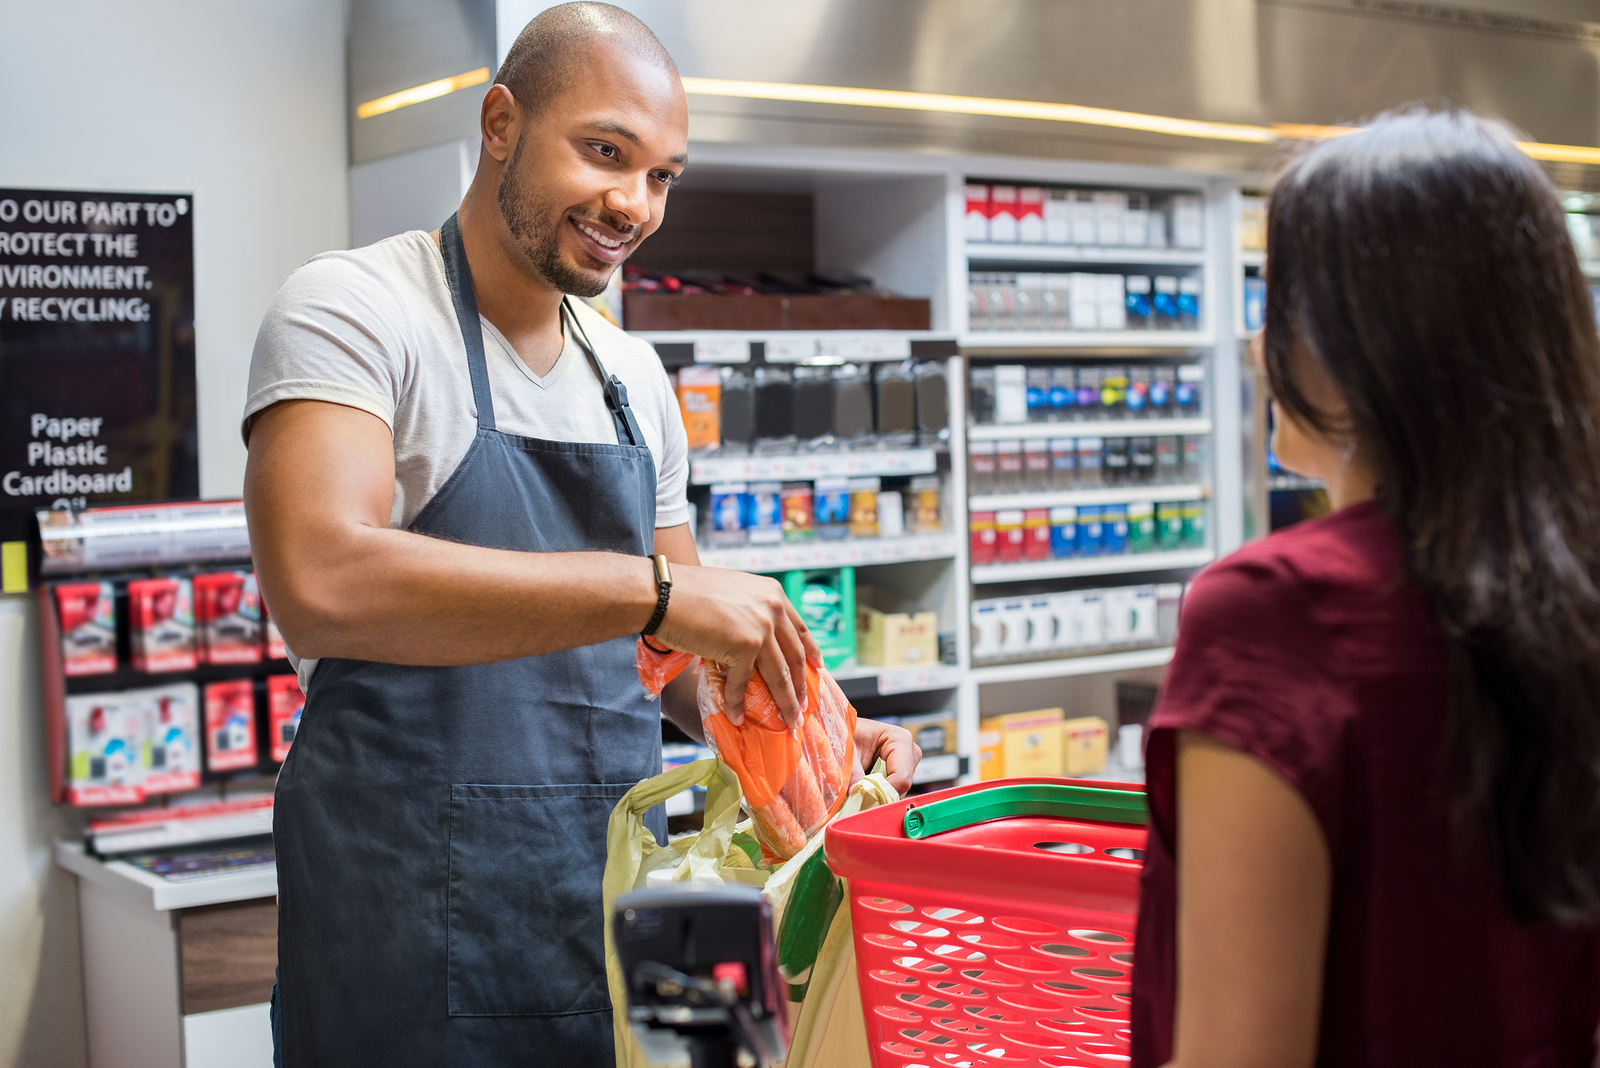 A smiling grocery store cashier bagging groceries for a customer.